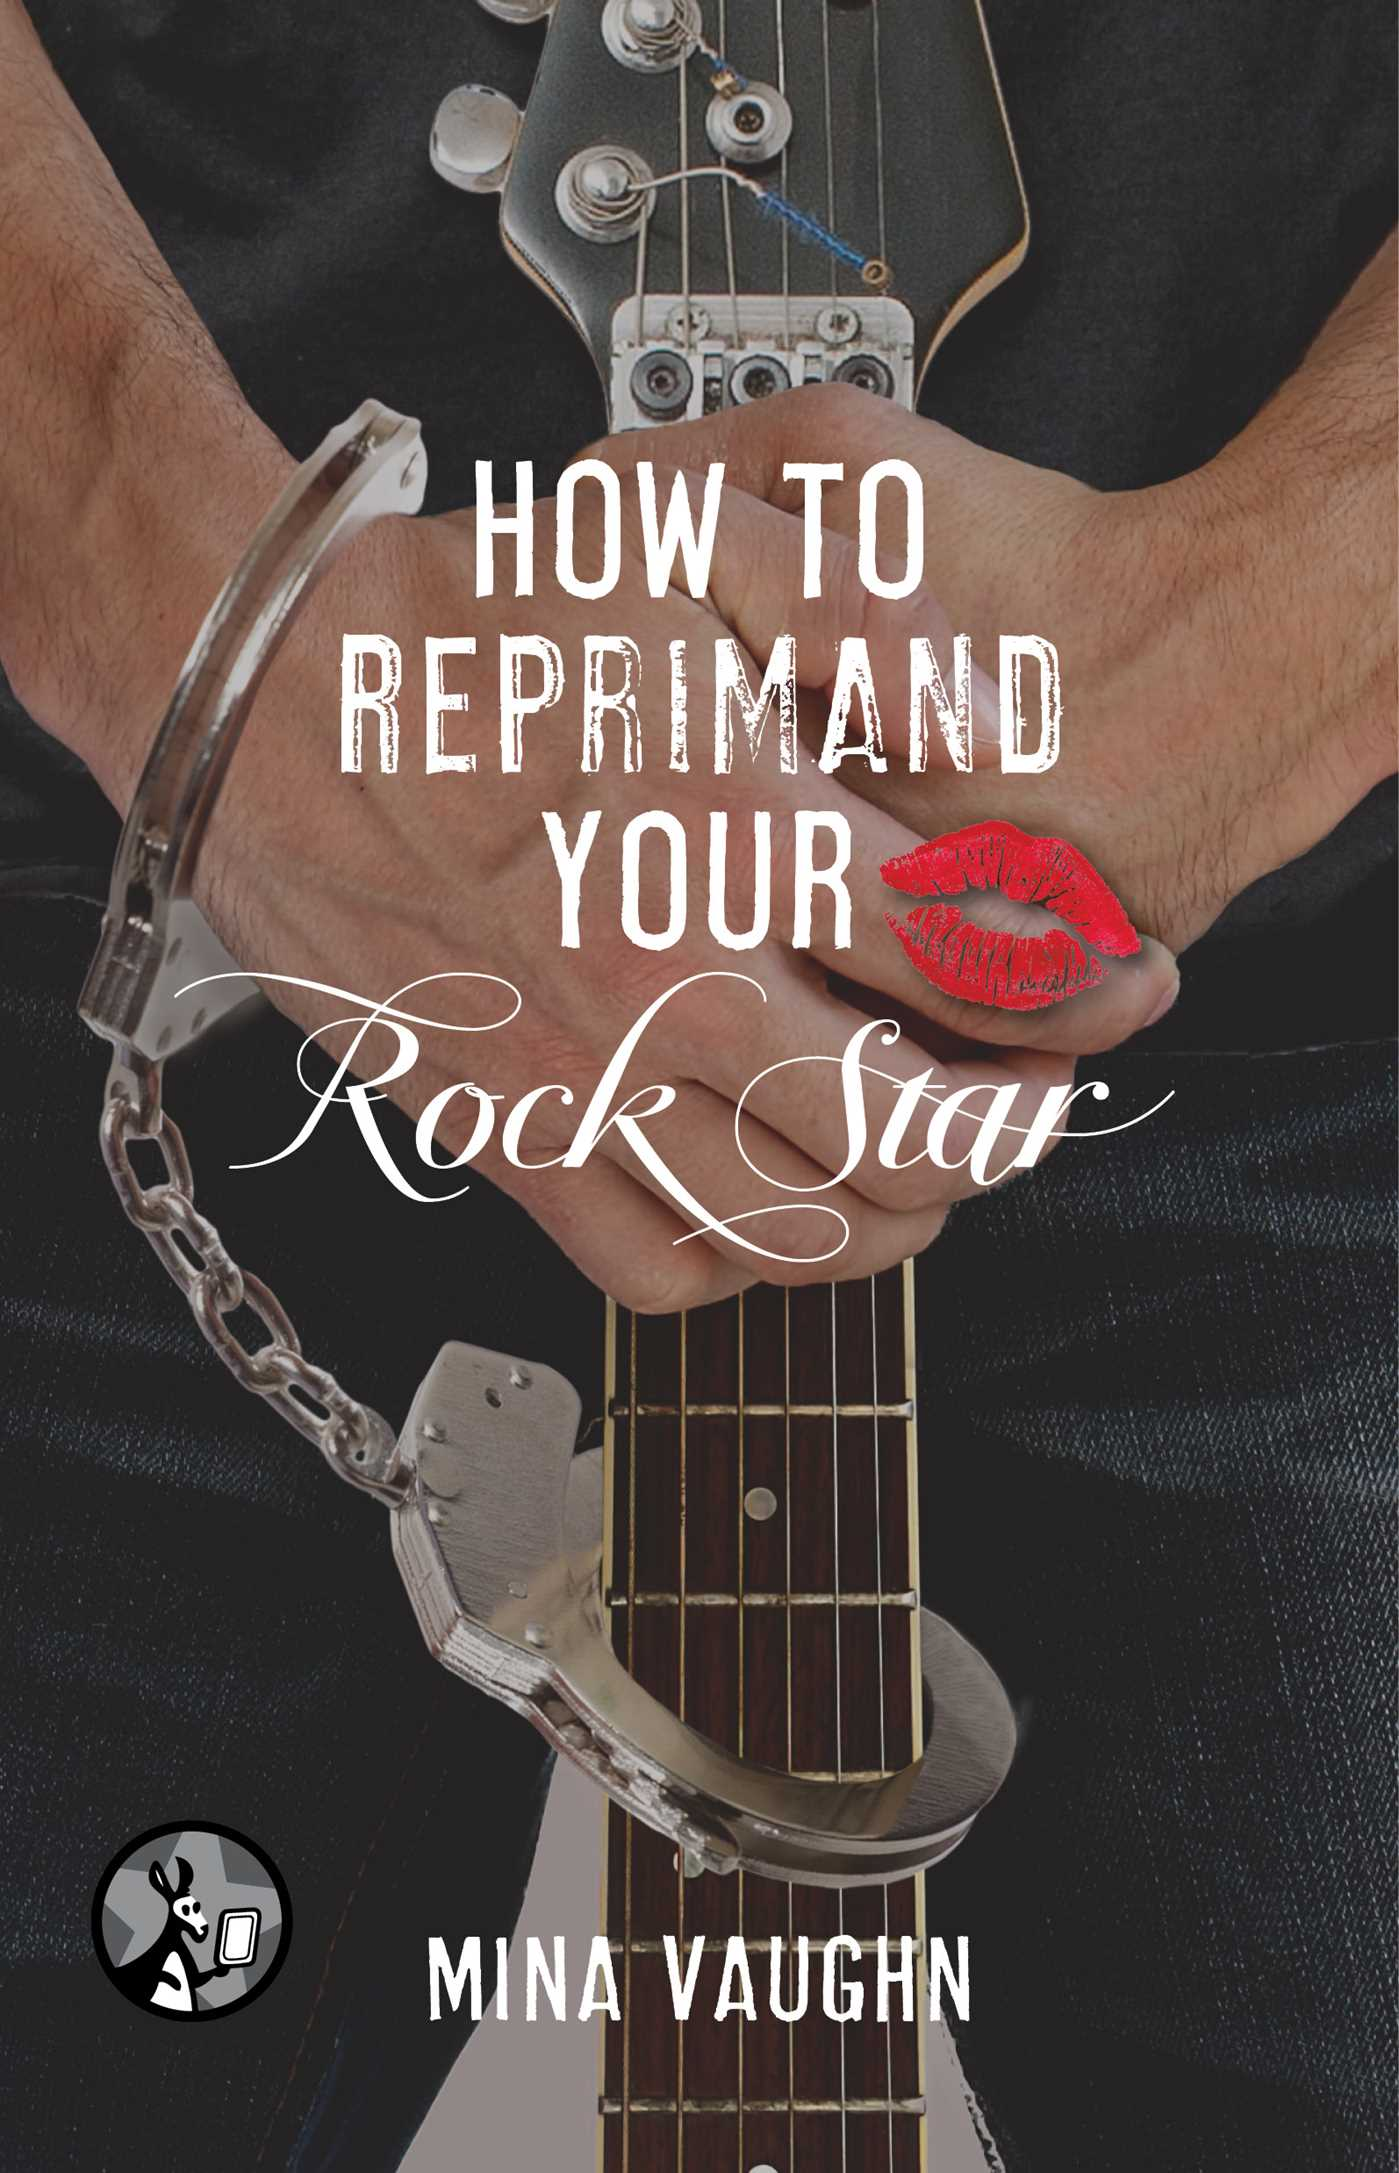 How-to-reprimand-your-rock-star-9781476770239_hr